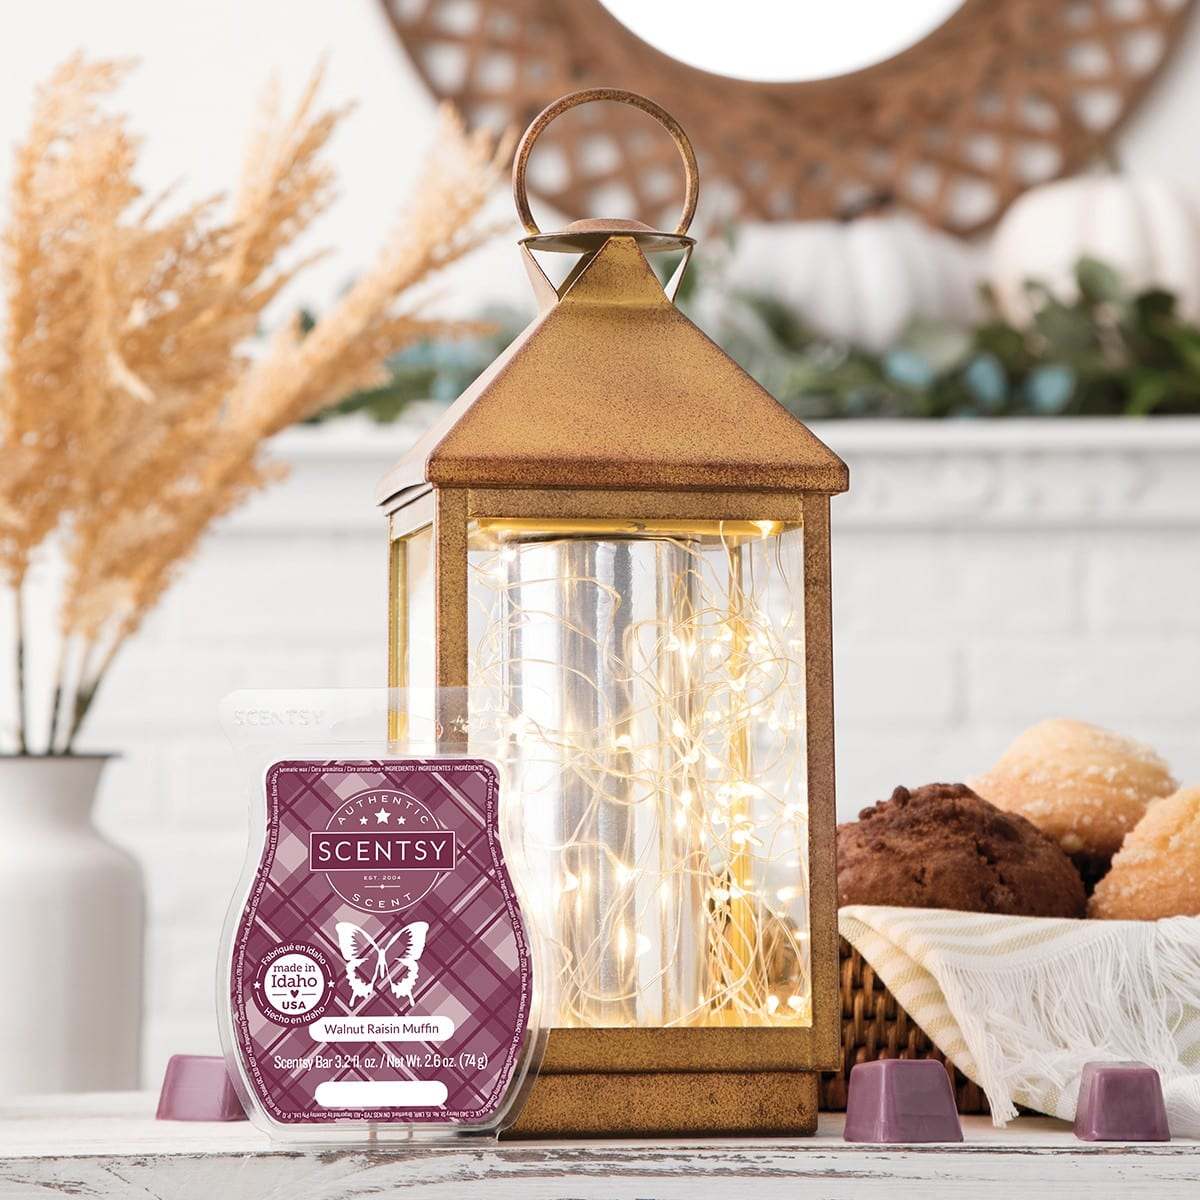 SCENTSY OCTOBER 2020 WARMER & SCENT OF THE MONTH – GLIMMER & GLOW SCENTSY WARMER & WALNUT RAISIN MUFFIN SCENTSY FRAGRANCE